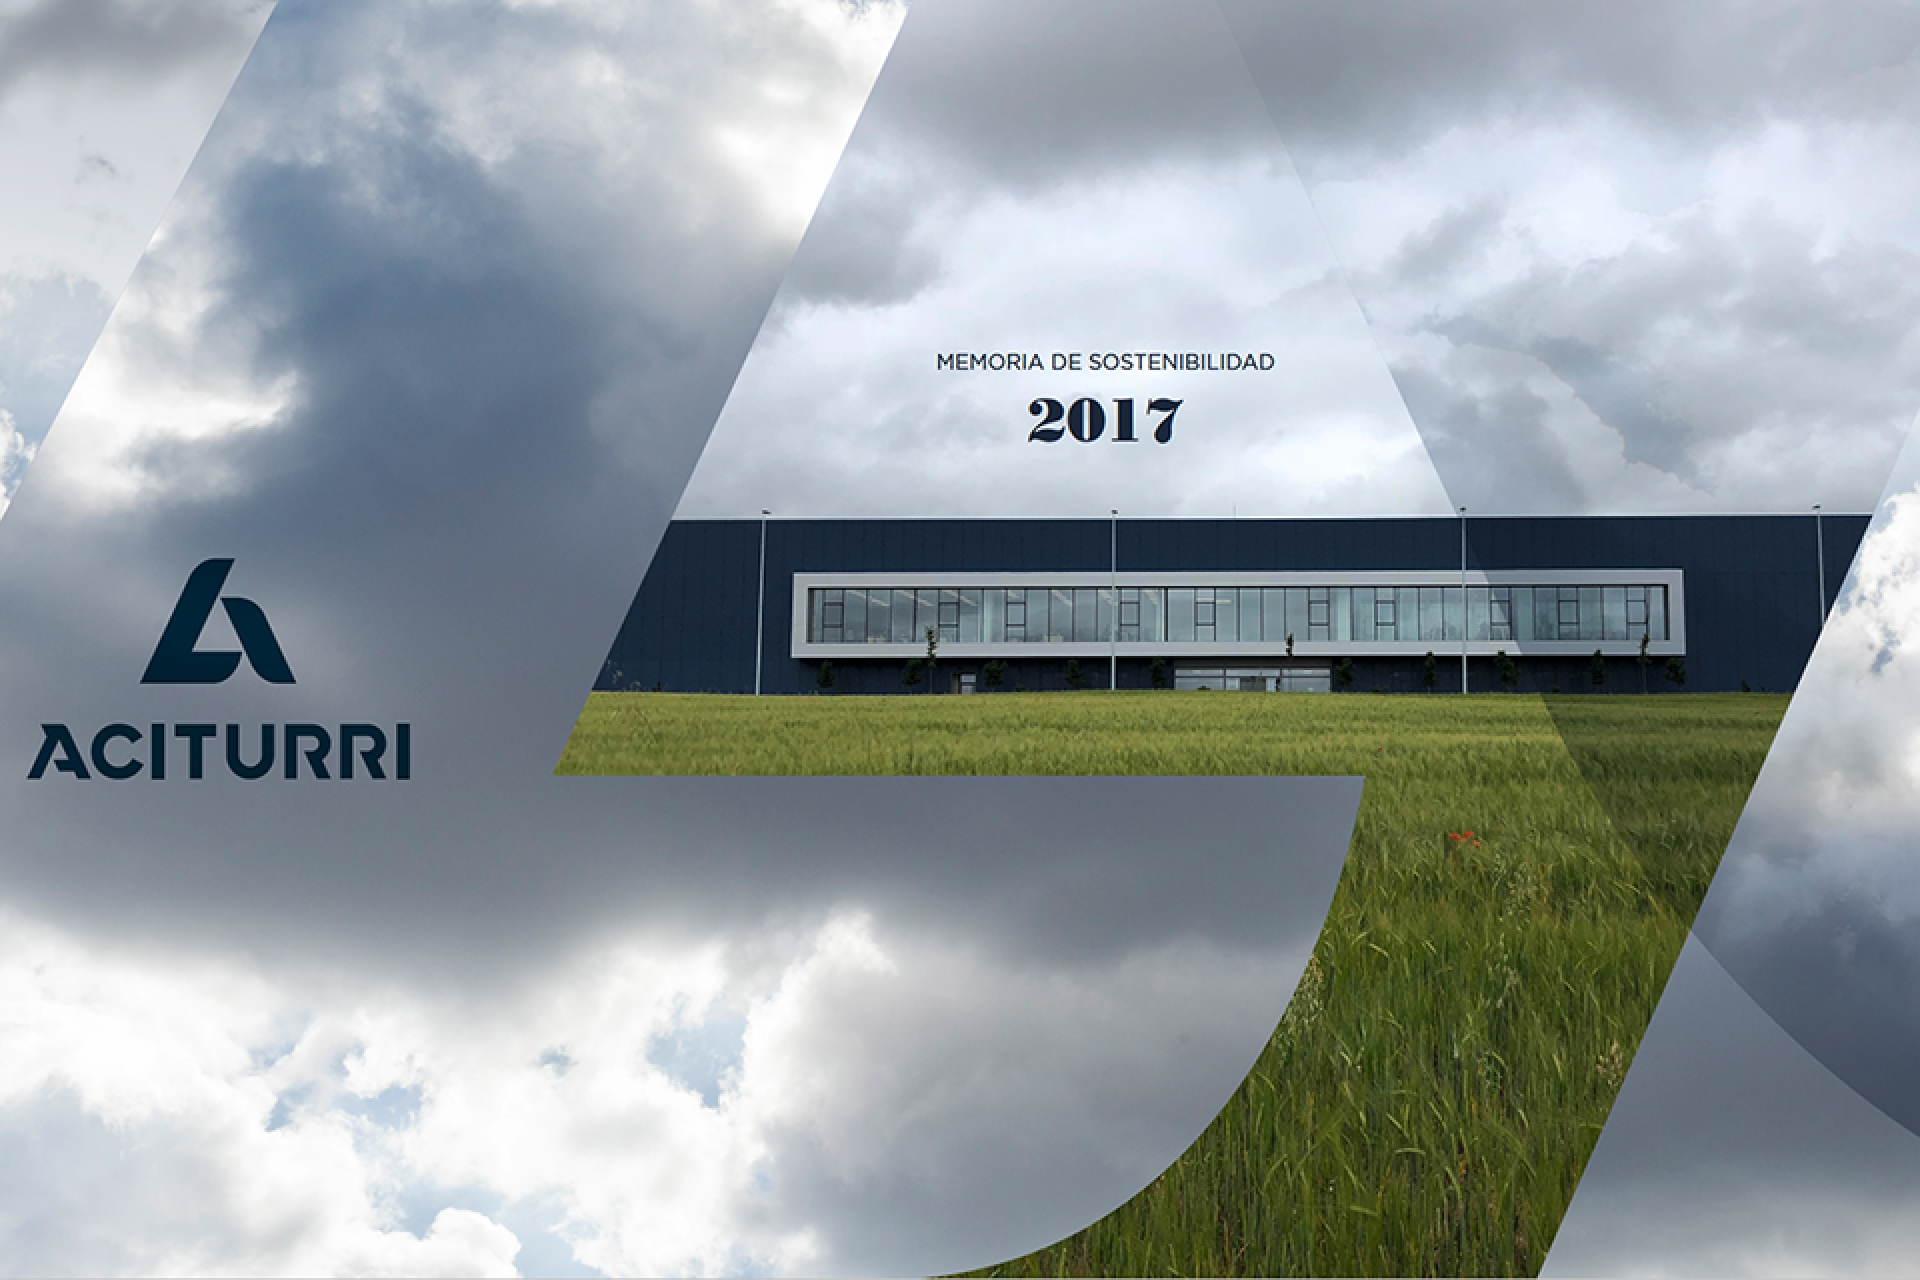 Sustainability report for Aciturri